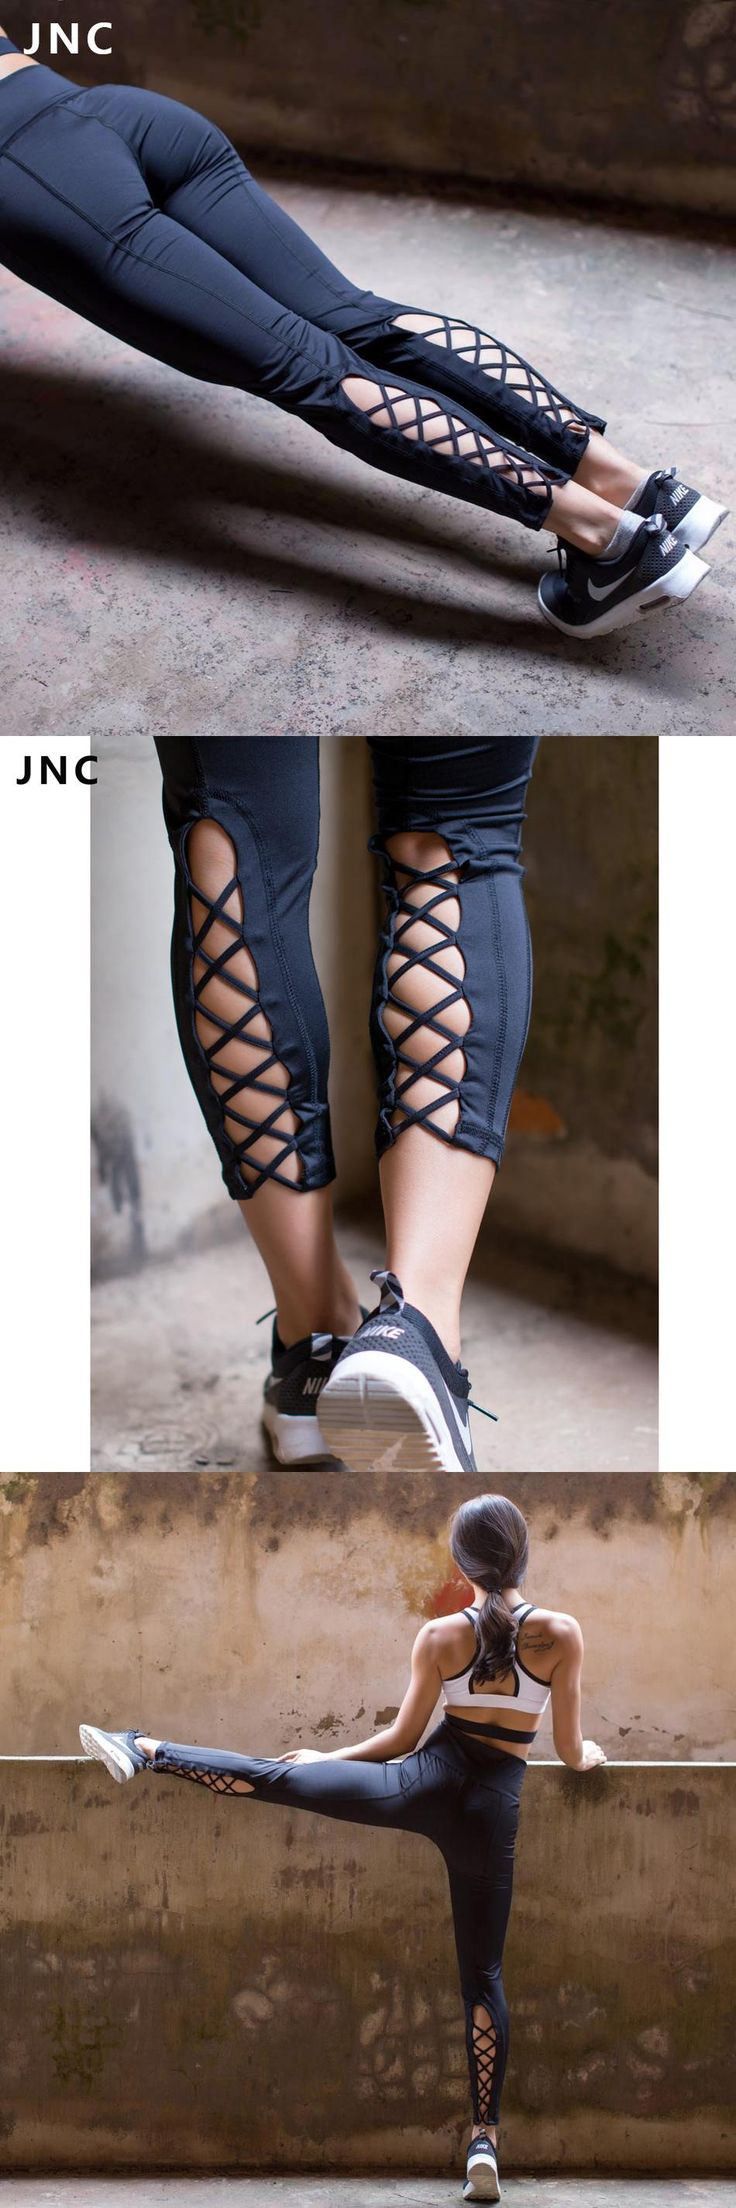 [Visit to Buy] JNC Womens Yoga Pants Active Running Workout Fitness Leggings Dance Pants Cutout Tie Cuff Slim Jogger Workout Tights #Advertisement